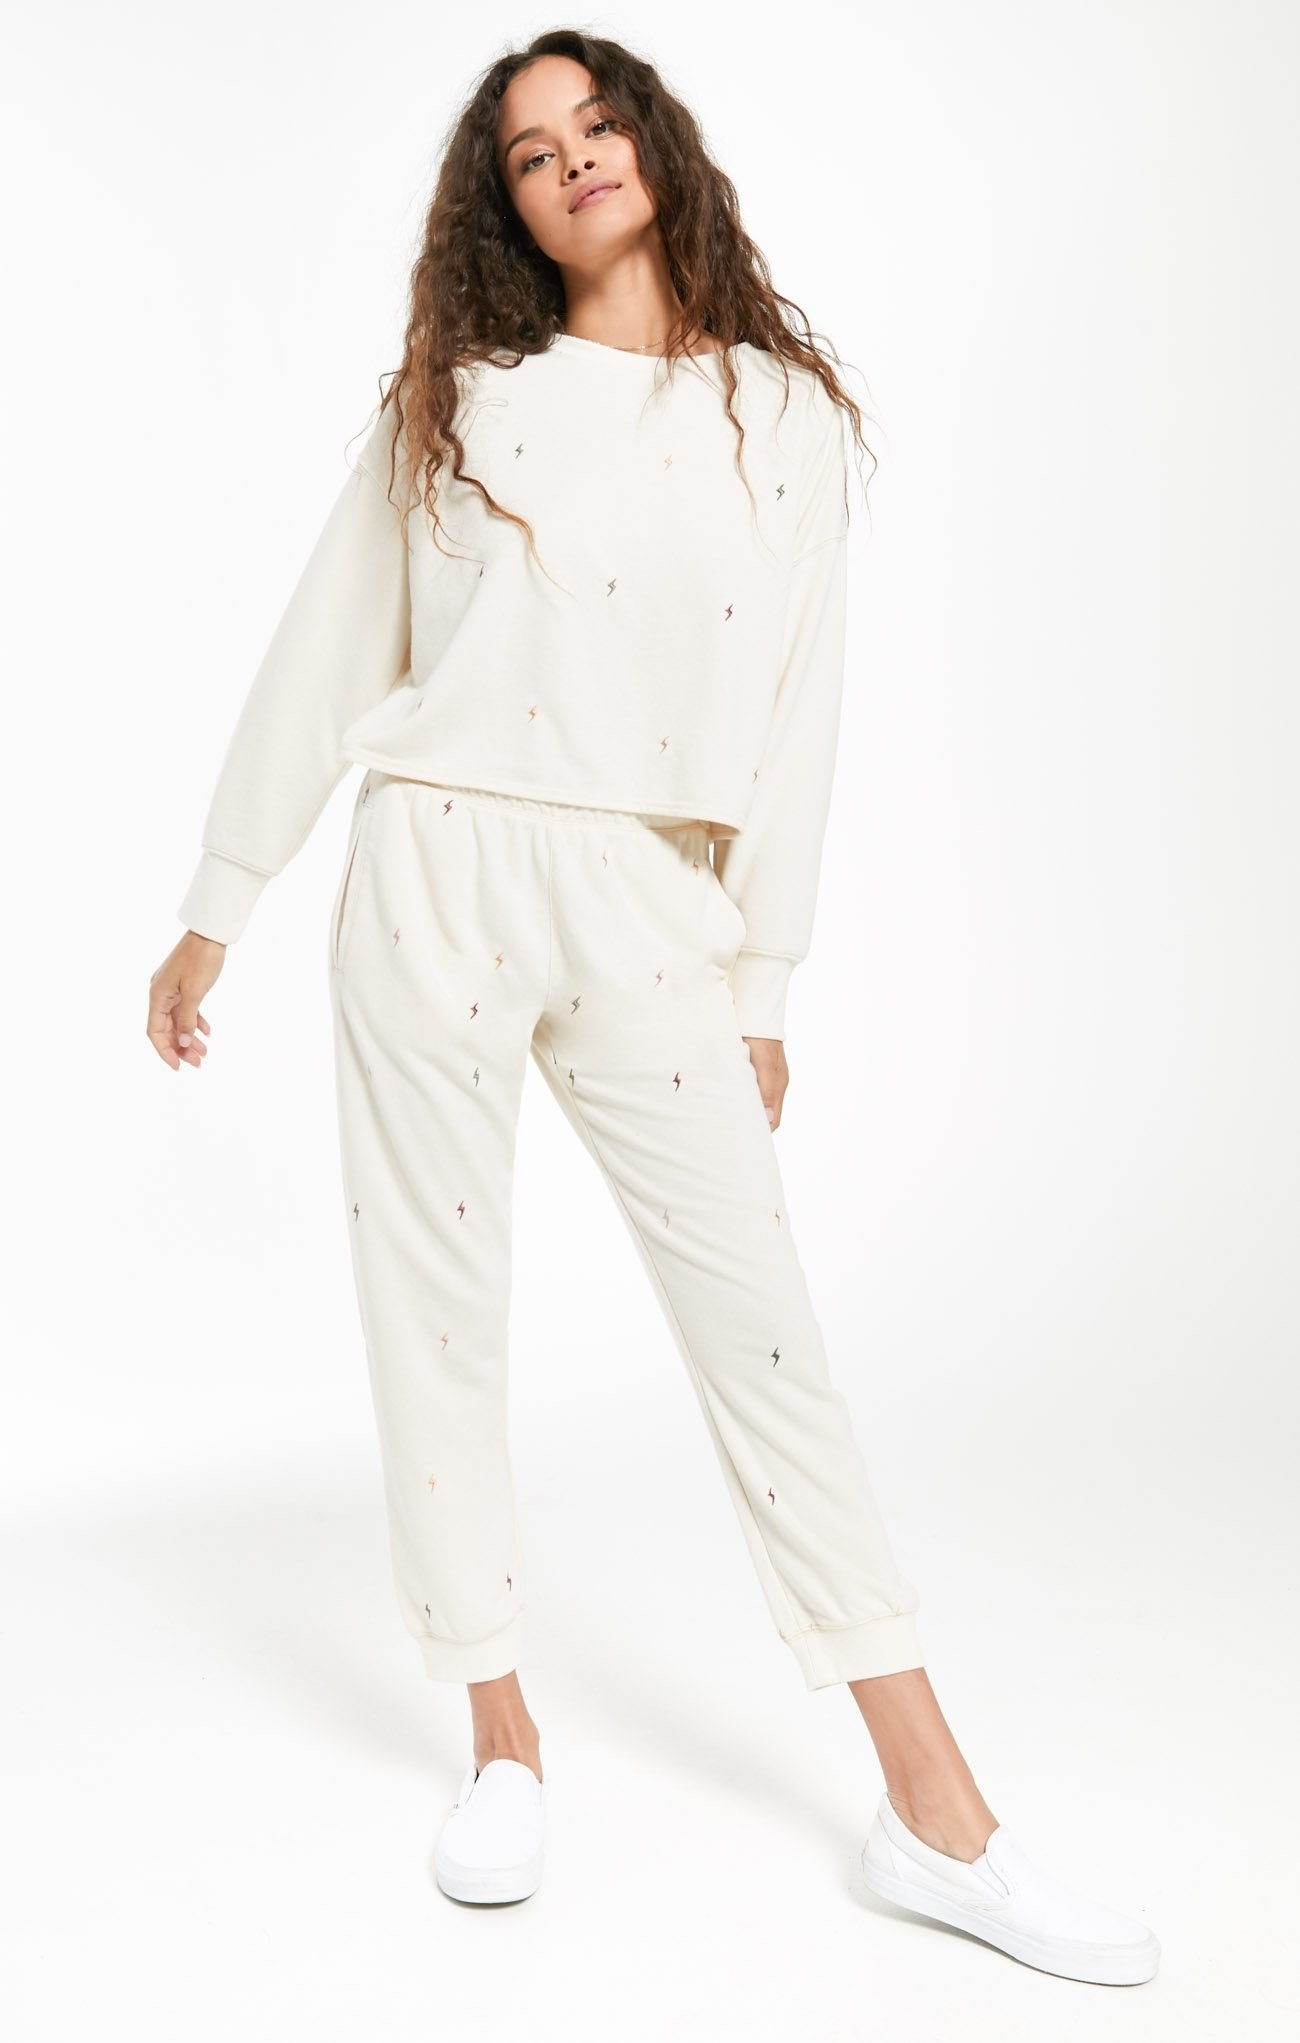 a model wearing a white sweatshirt and pants with tiny gold lightning bolts on it